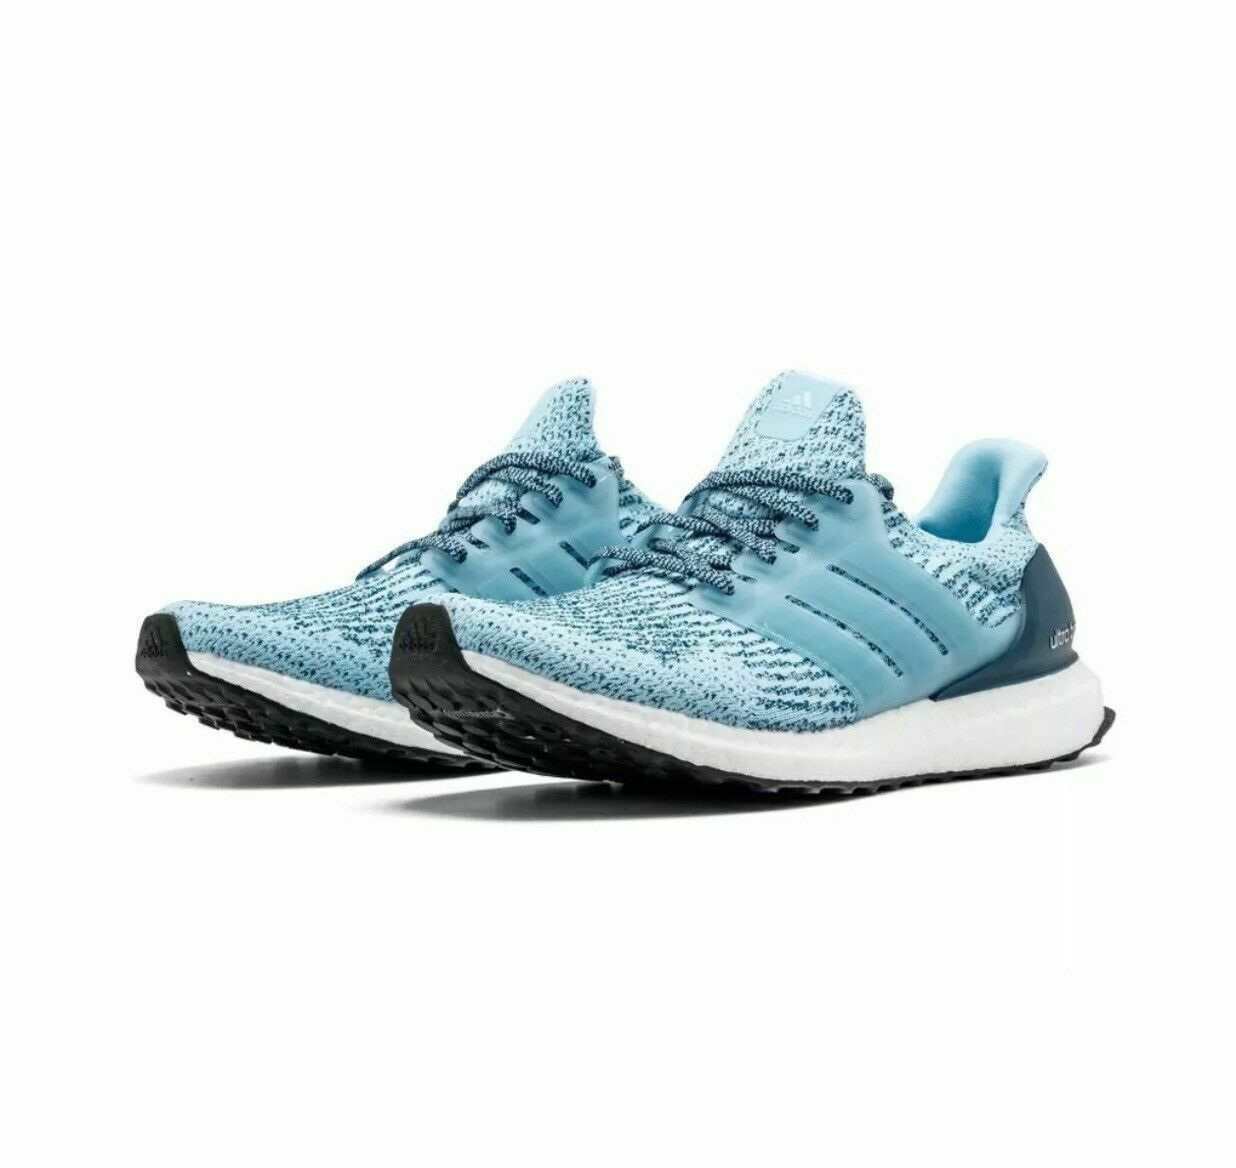 Womens Adidas Ultraboost - Ice bluee Ultra Boost S82055 Size 5-11